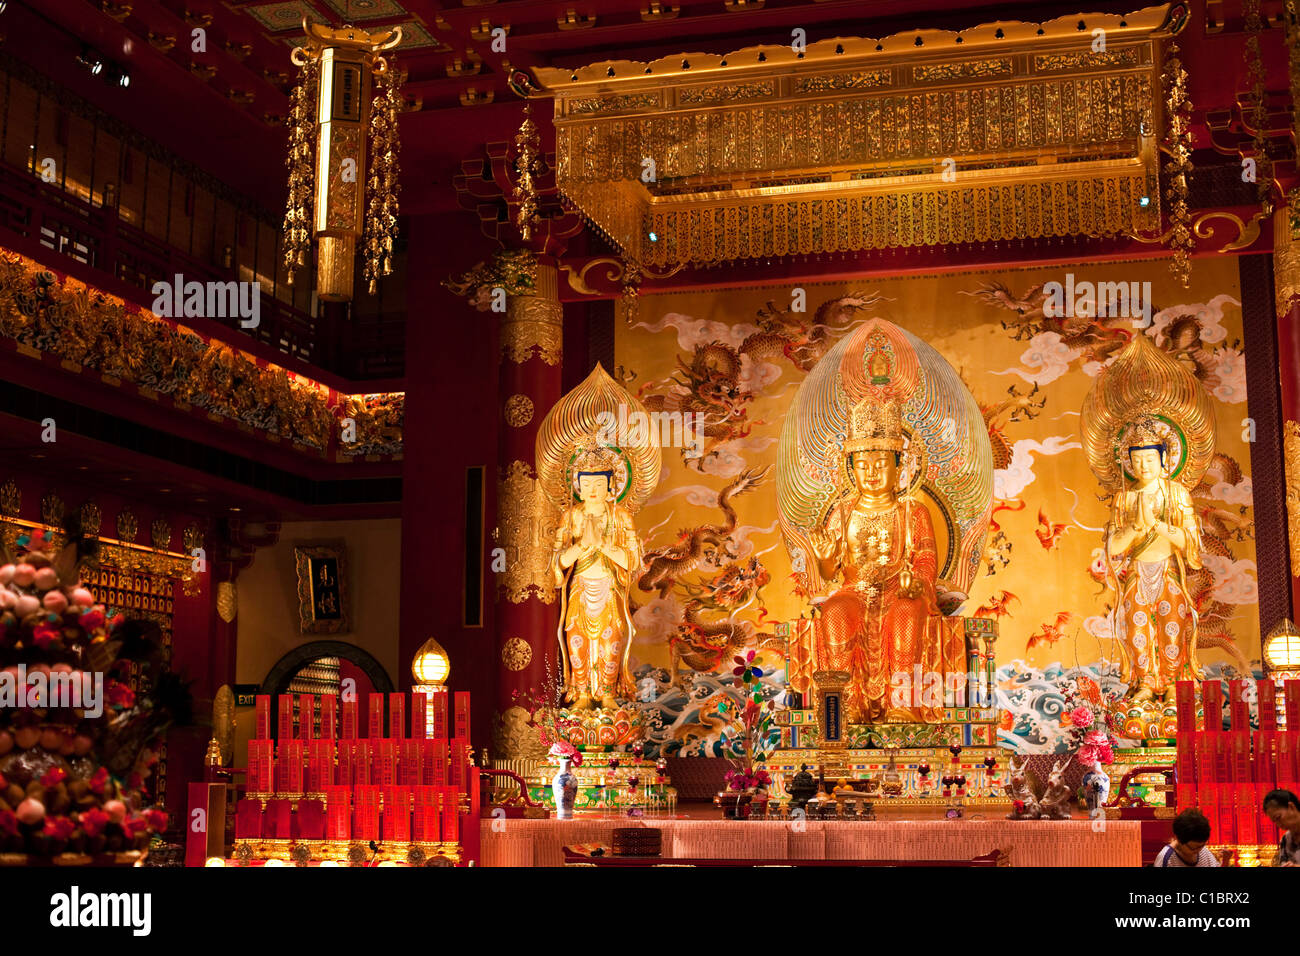 Shrine in the Buddha Tooth Relic Temple and Museum, Chinatown, Singapore - Stock Image